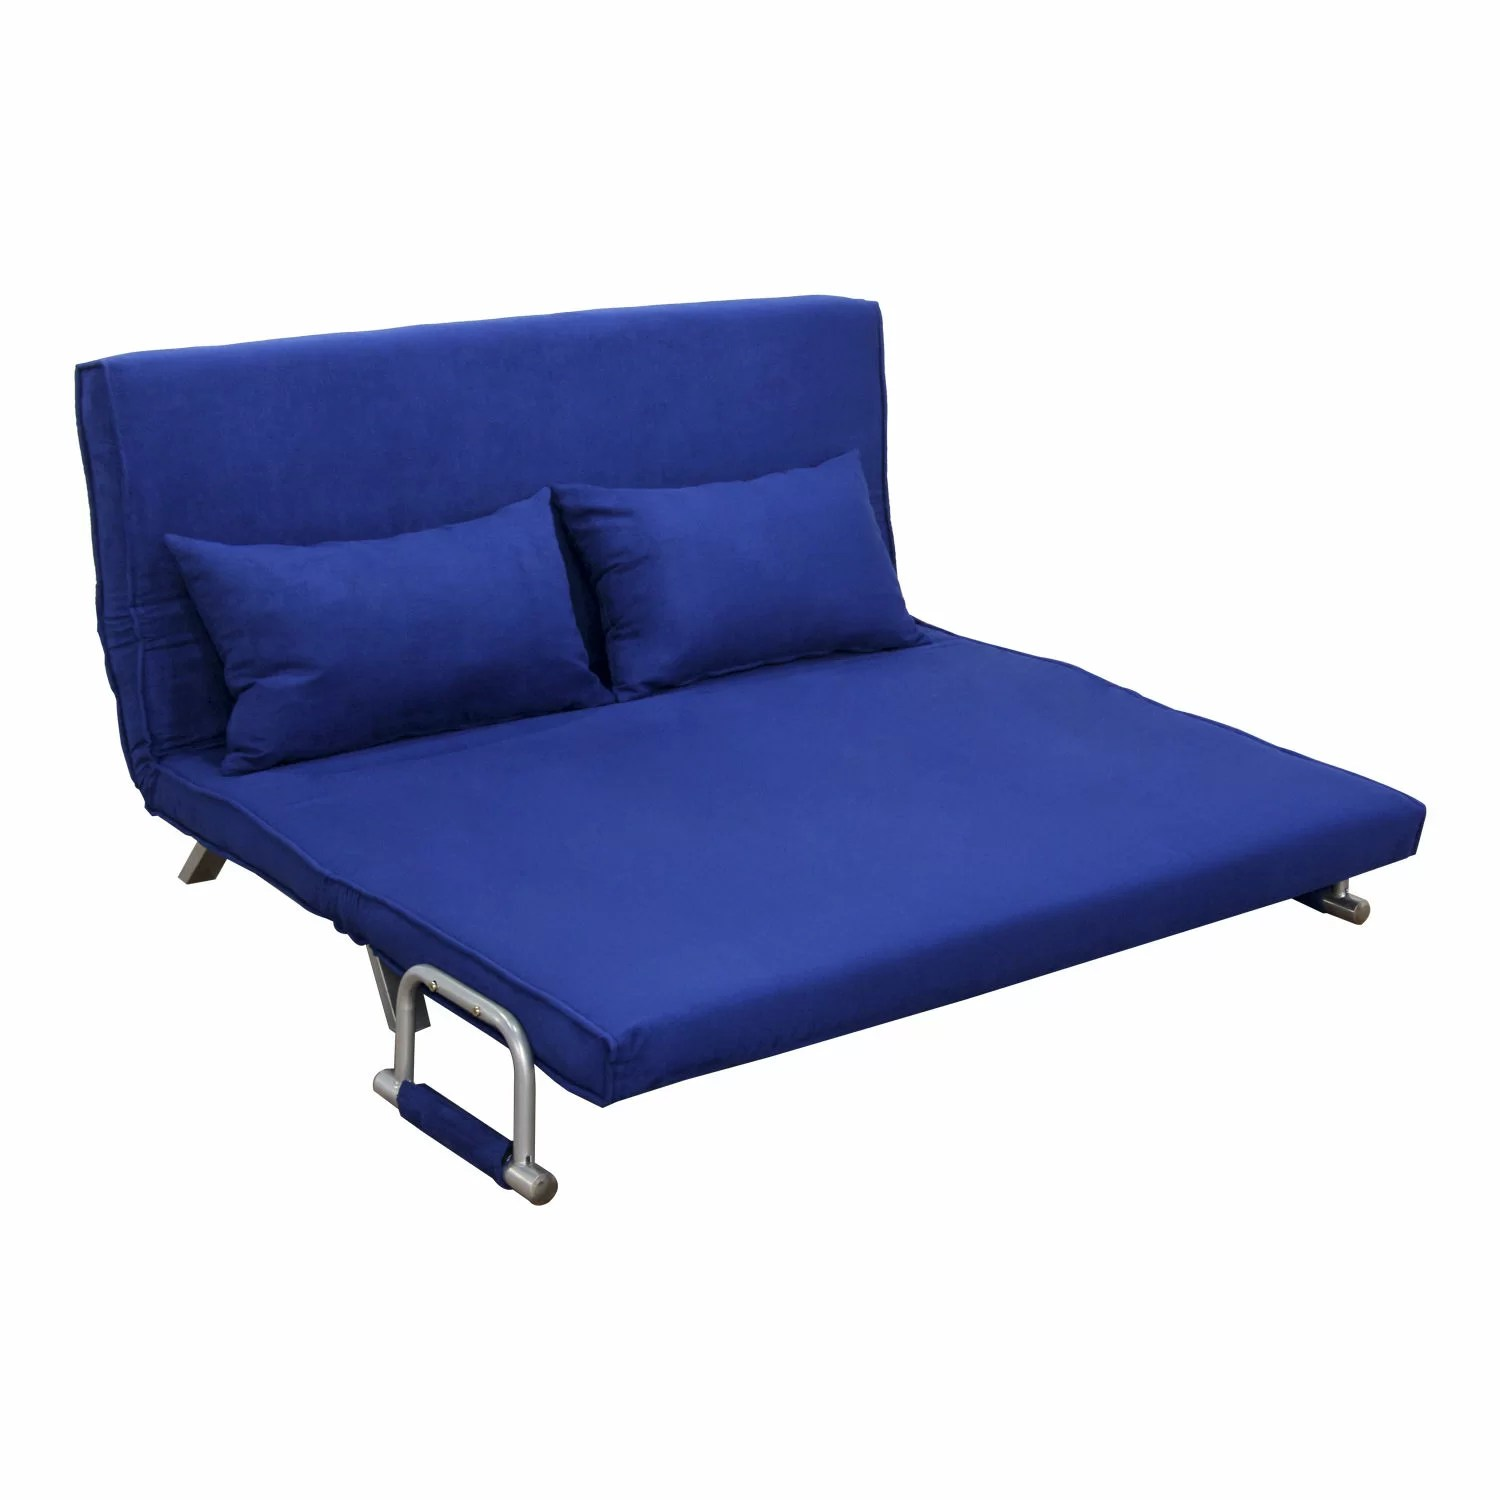 Folding Couch Chair Homcom Folding Futon Sleeper Sofa And Reviews Wayfair